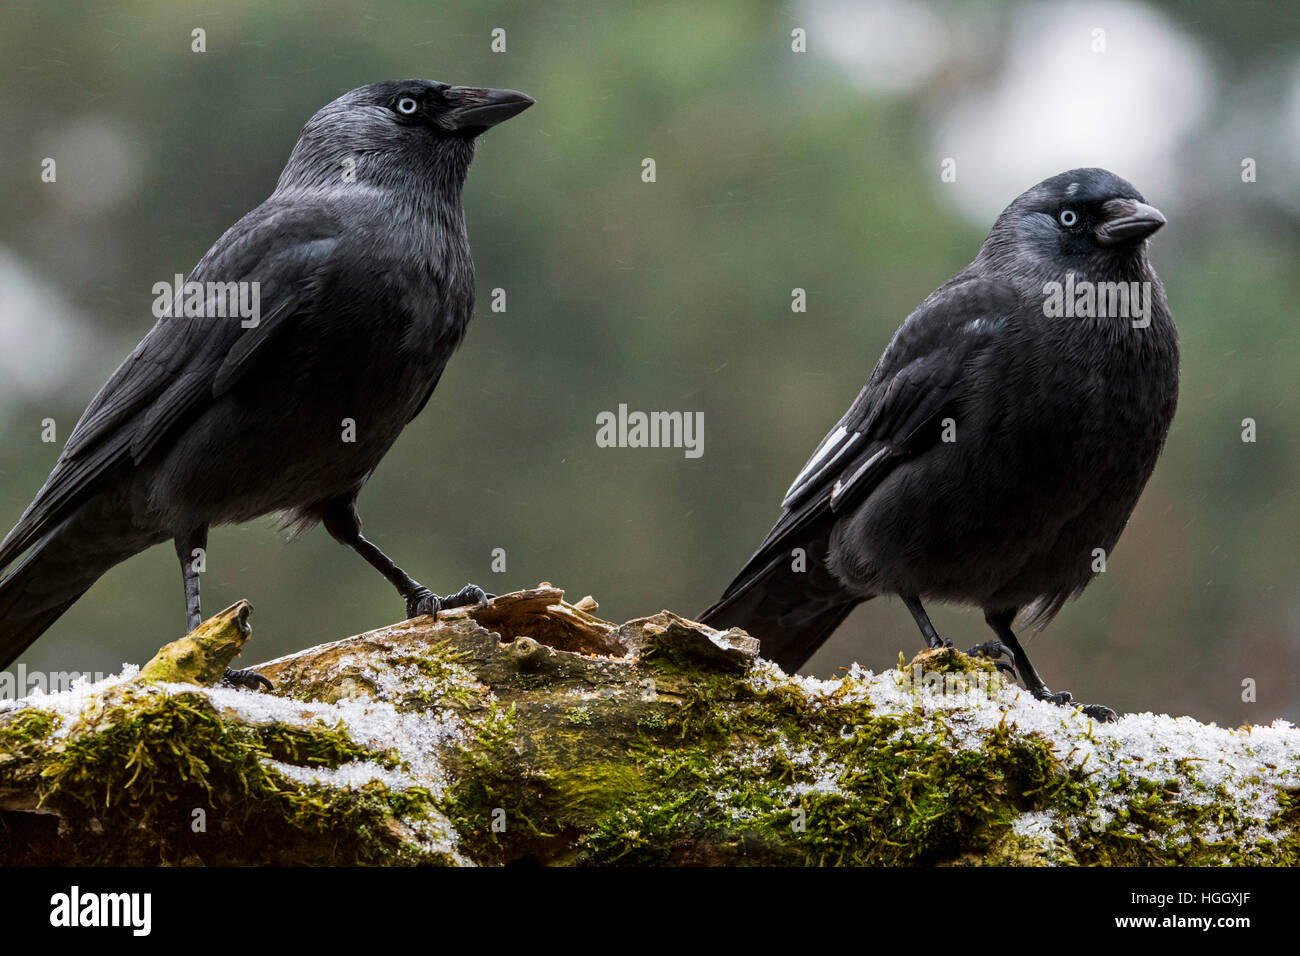 Leucistic Western jackdaw showing white wing feathers due to partial leucism and normal jackdaw (Corvus monedula) - Stock Image